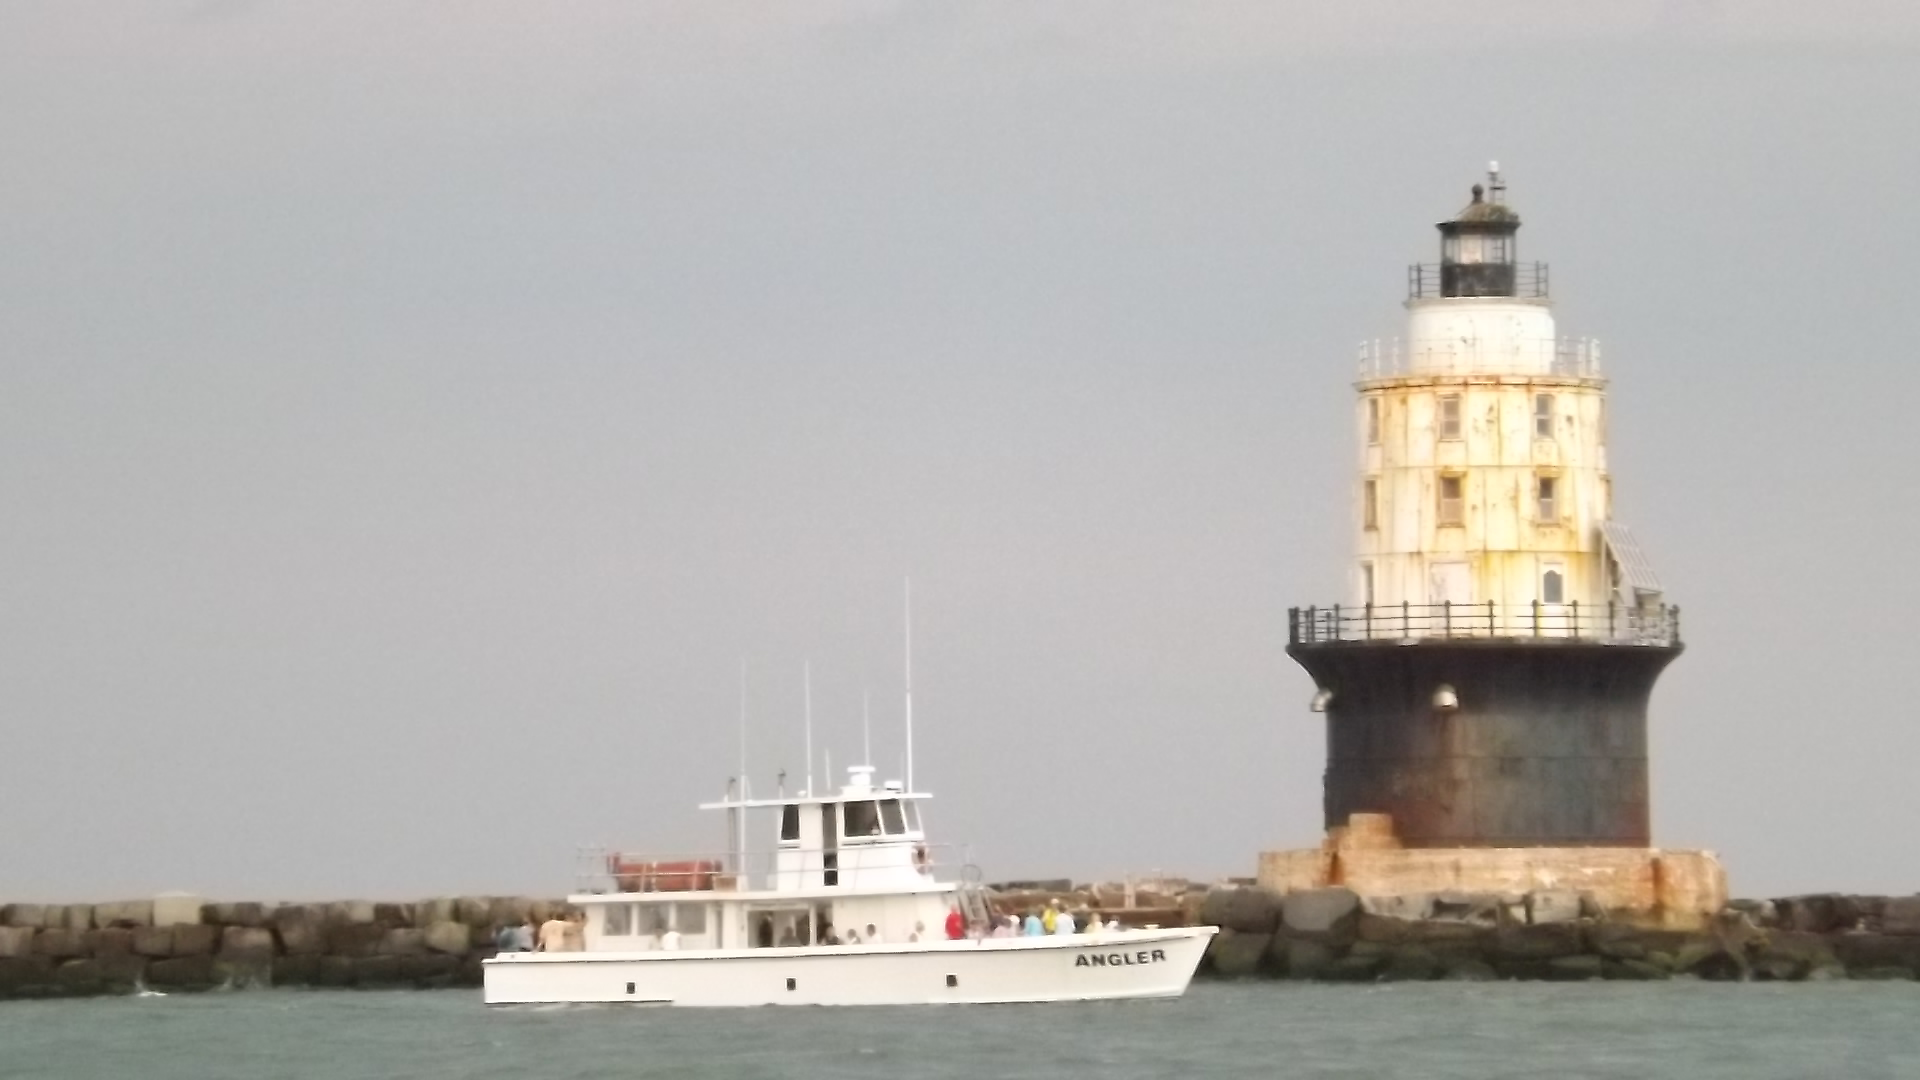 Harbor of Refuge light, delaware, cape henlopen, national harbor of refuge,inner wall, sussex county, lewes, delaware bay, the point, the angler, pirate king, the indian